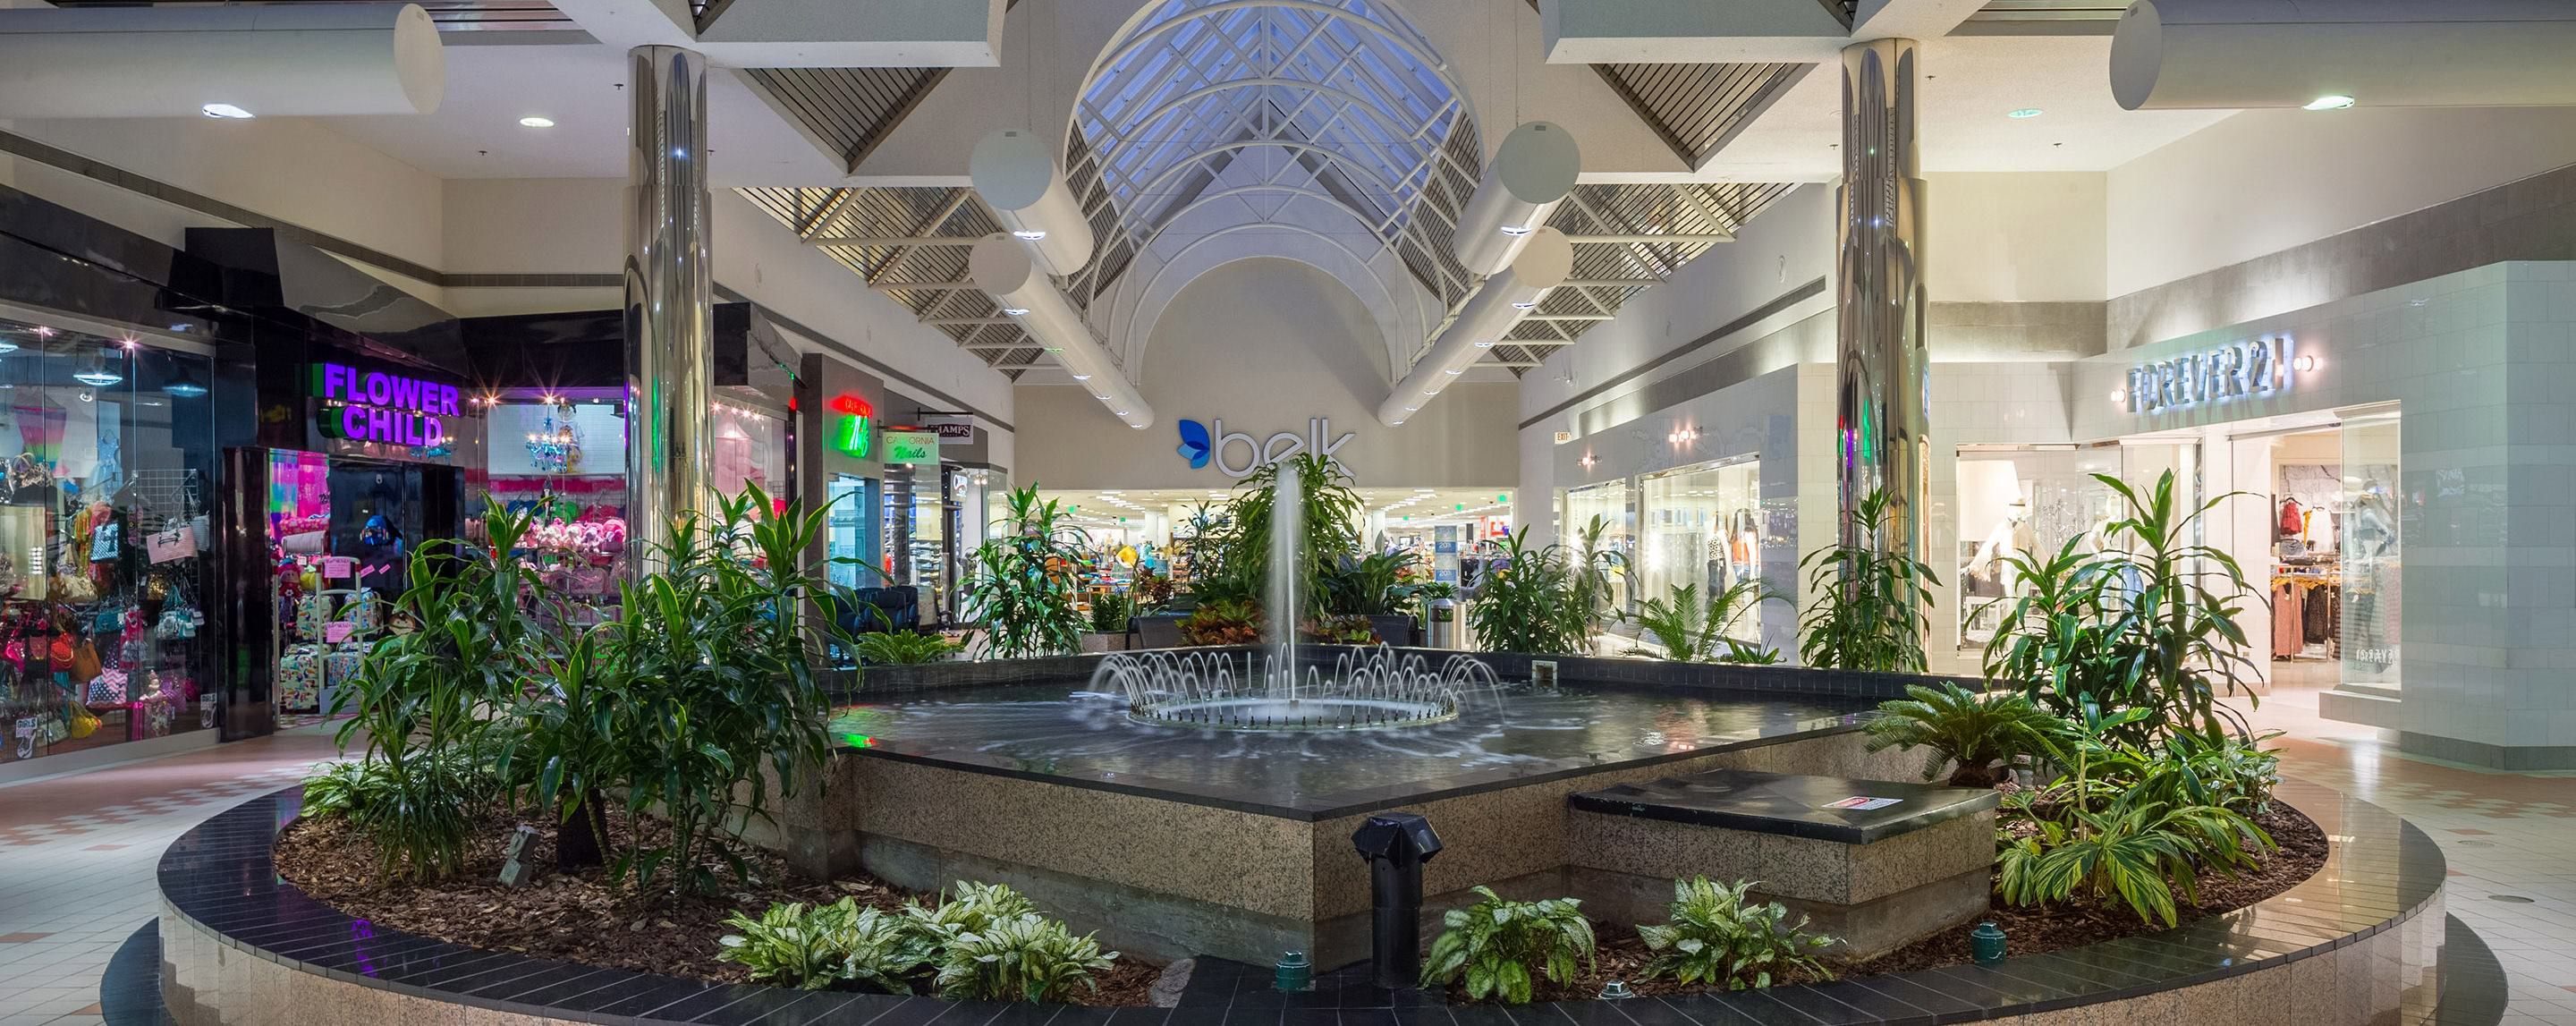 In a common area of Pecanland Mall, a running fountain with plants is surrounded by store fronts.